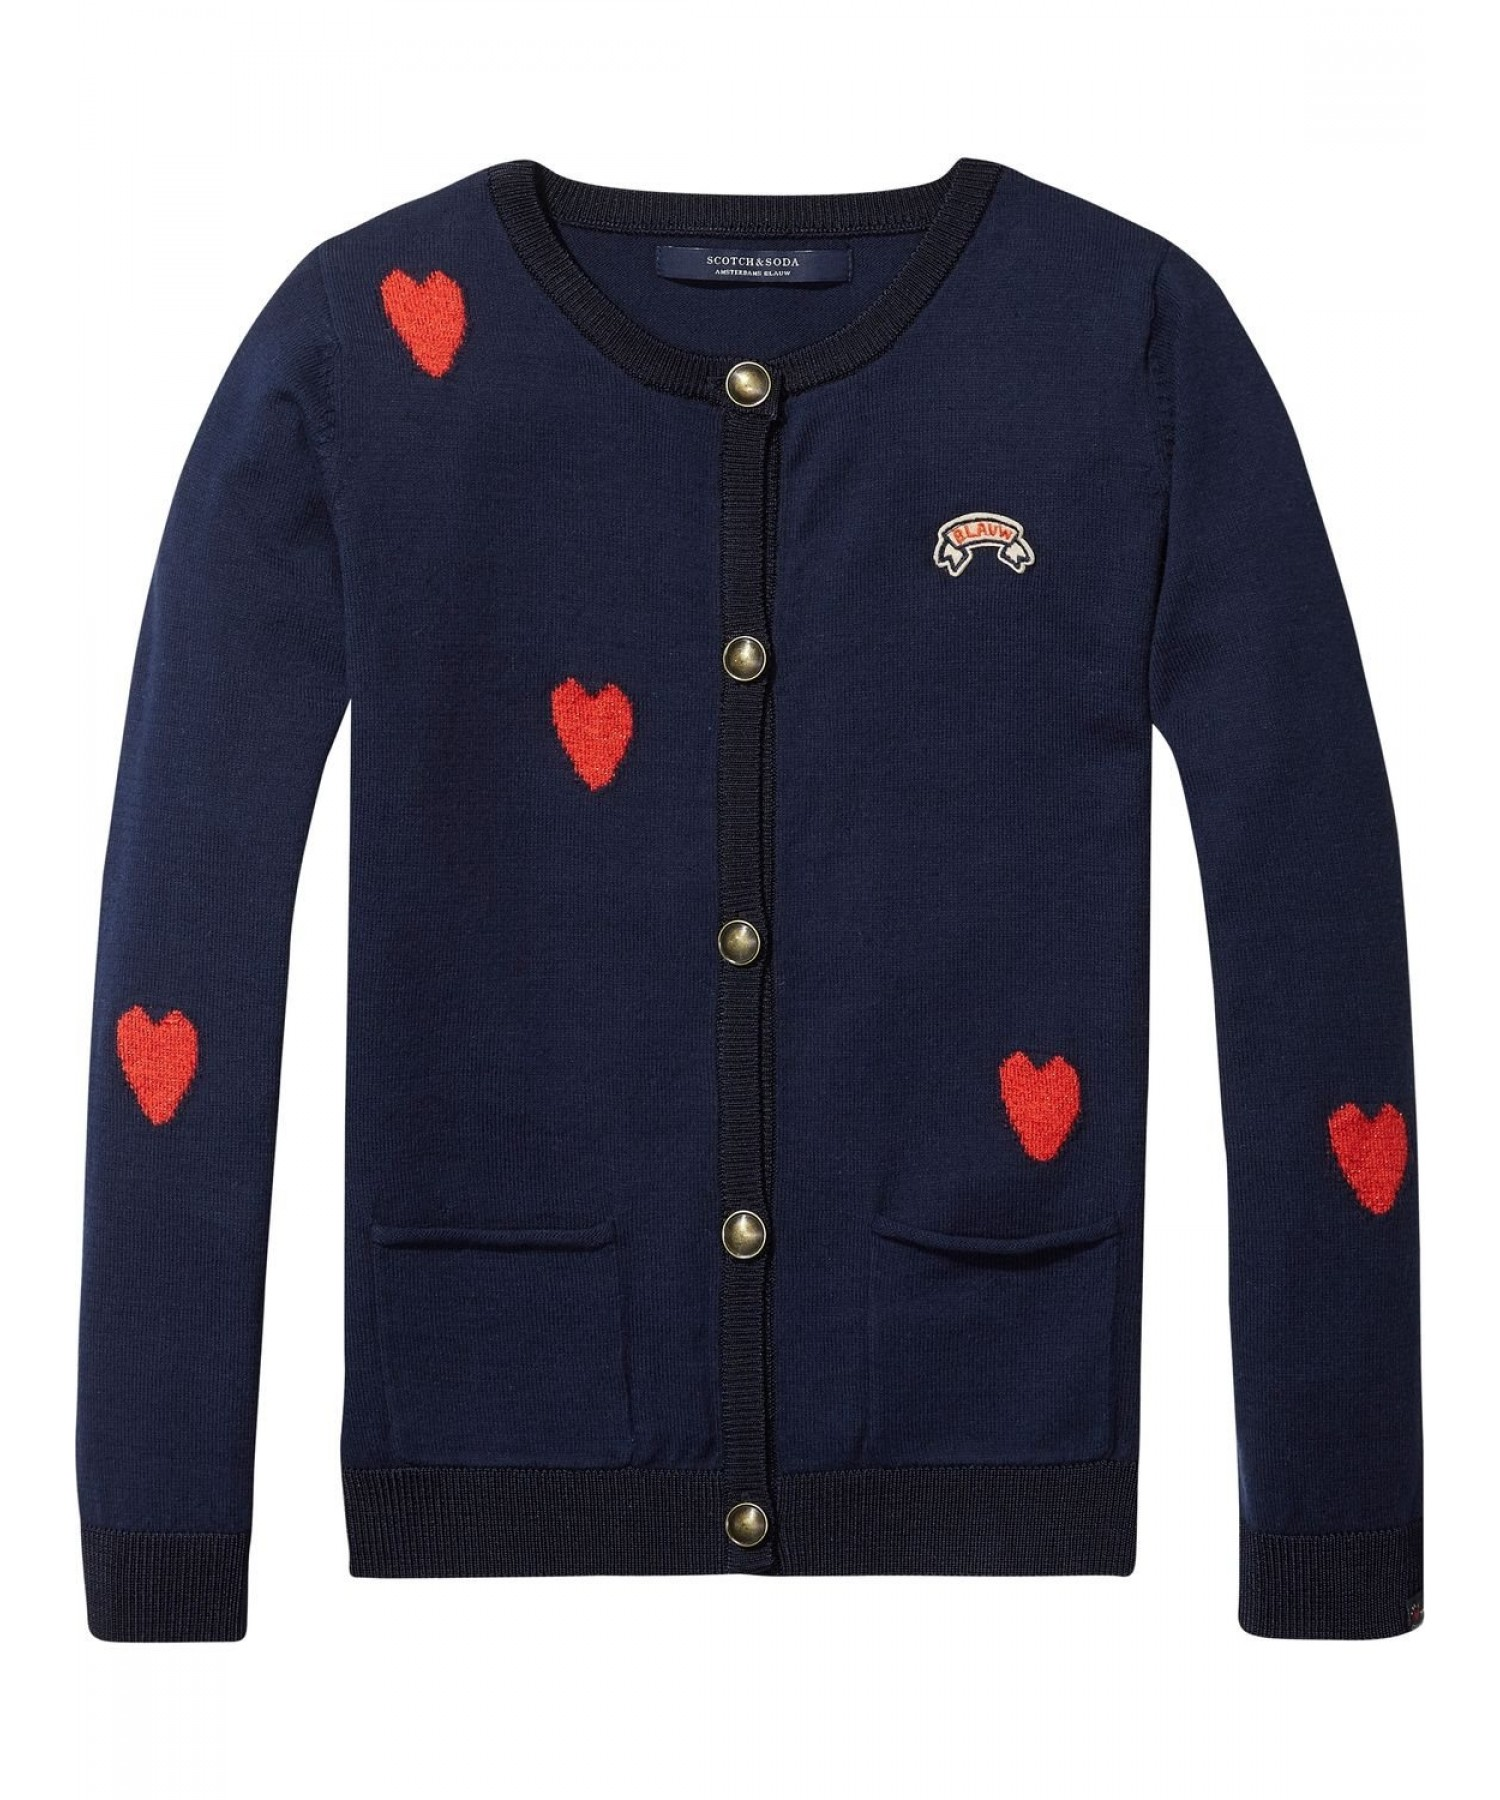 scotch rbelle heart intarsia cotton cardigan at eb vloed. Black Bedroom Furniture Sets. Home Design Ideas